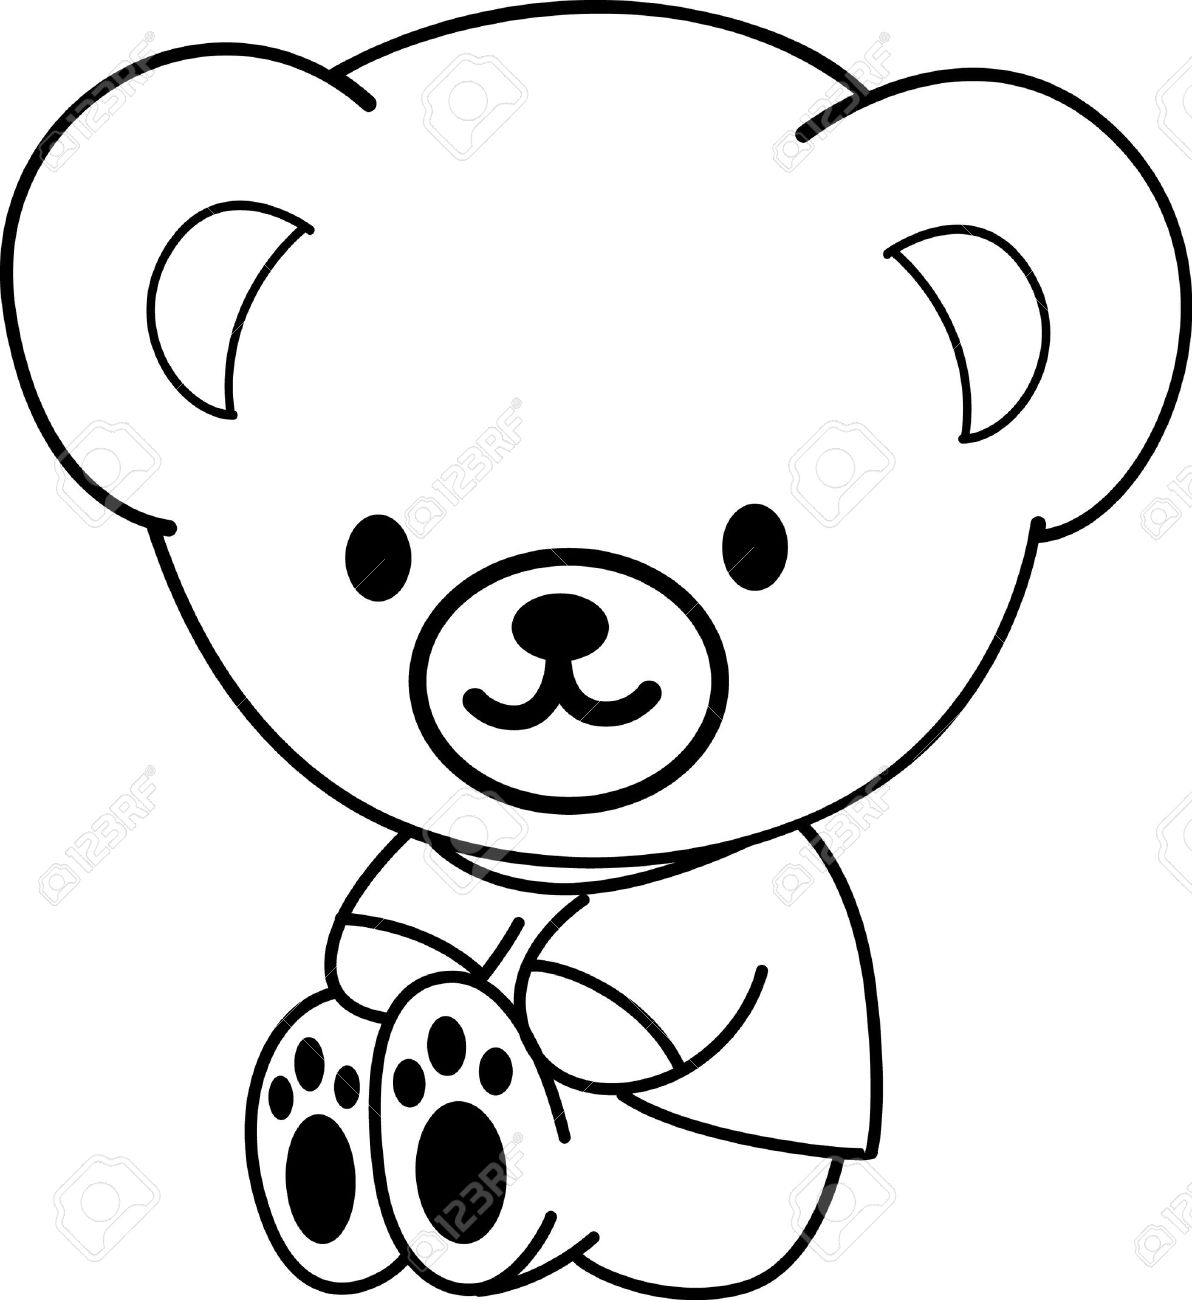 1192x1300 Teddy Bear Clipart Drawing Picture